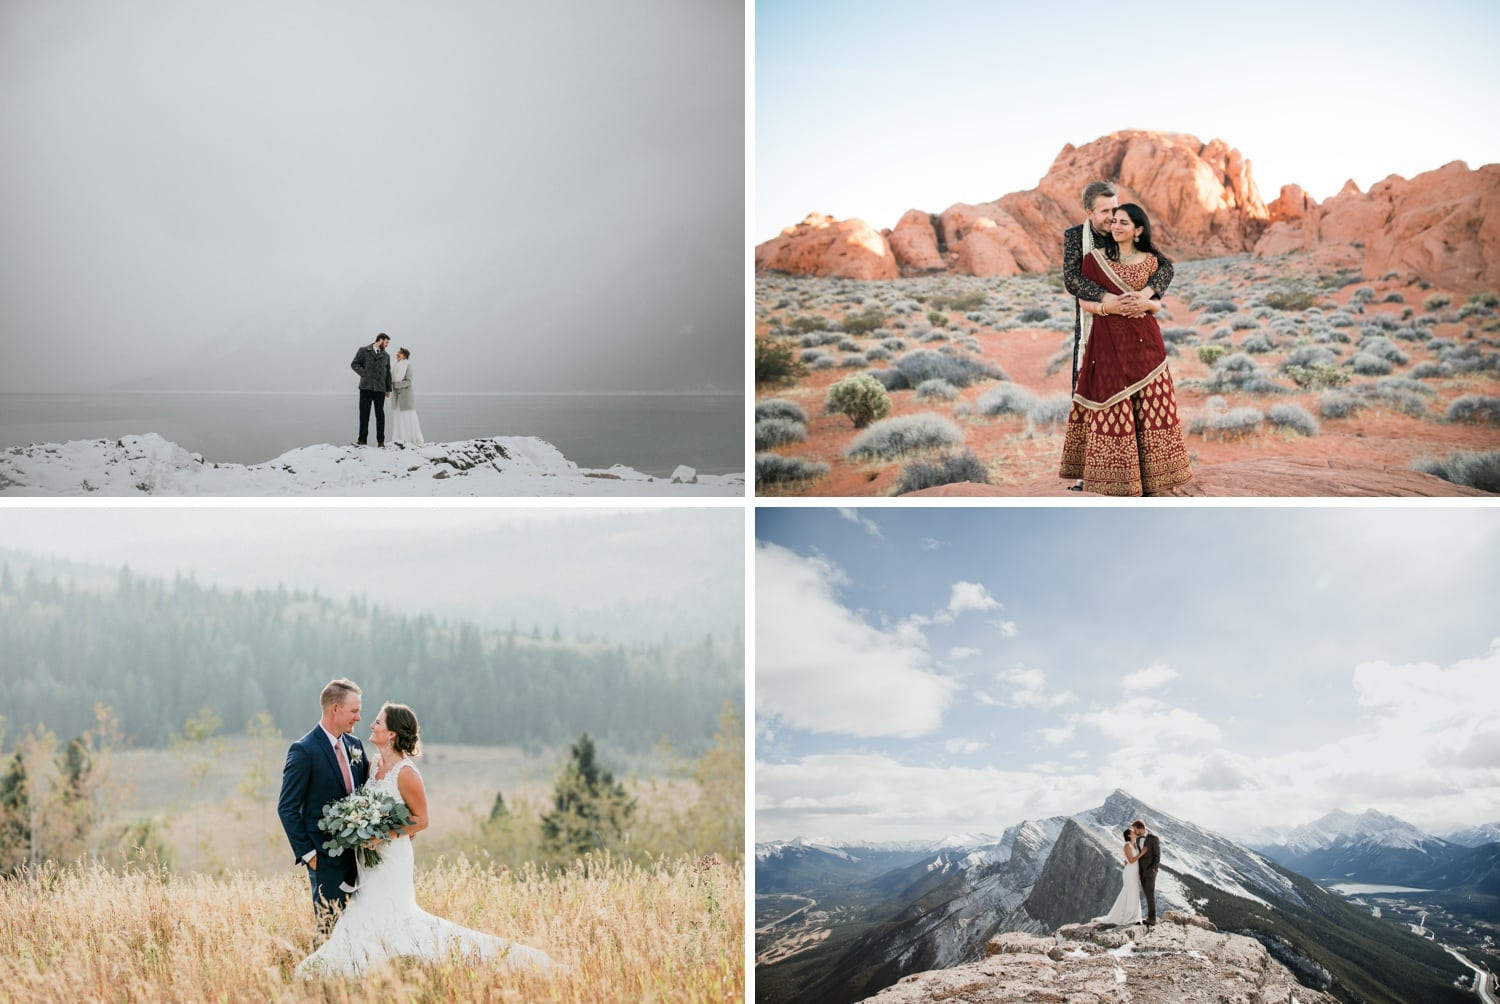 2018 Adventure Elopement Giveaway Intimate Wedding Giveaway Elopement Destination Elopement Mountain Elopement Laura Barclay Photography